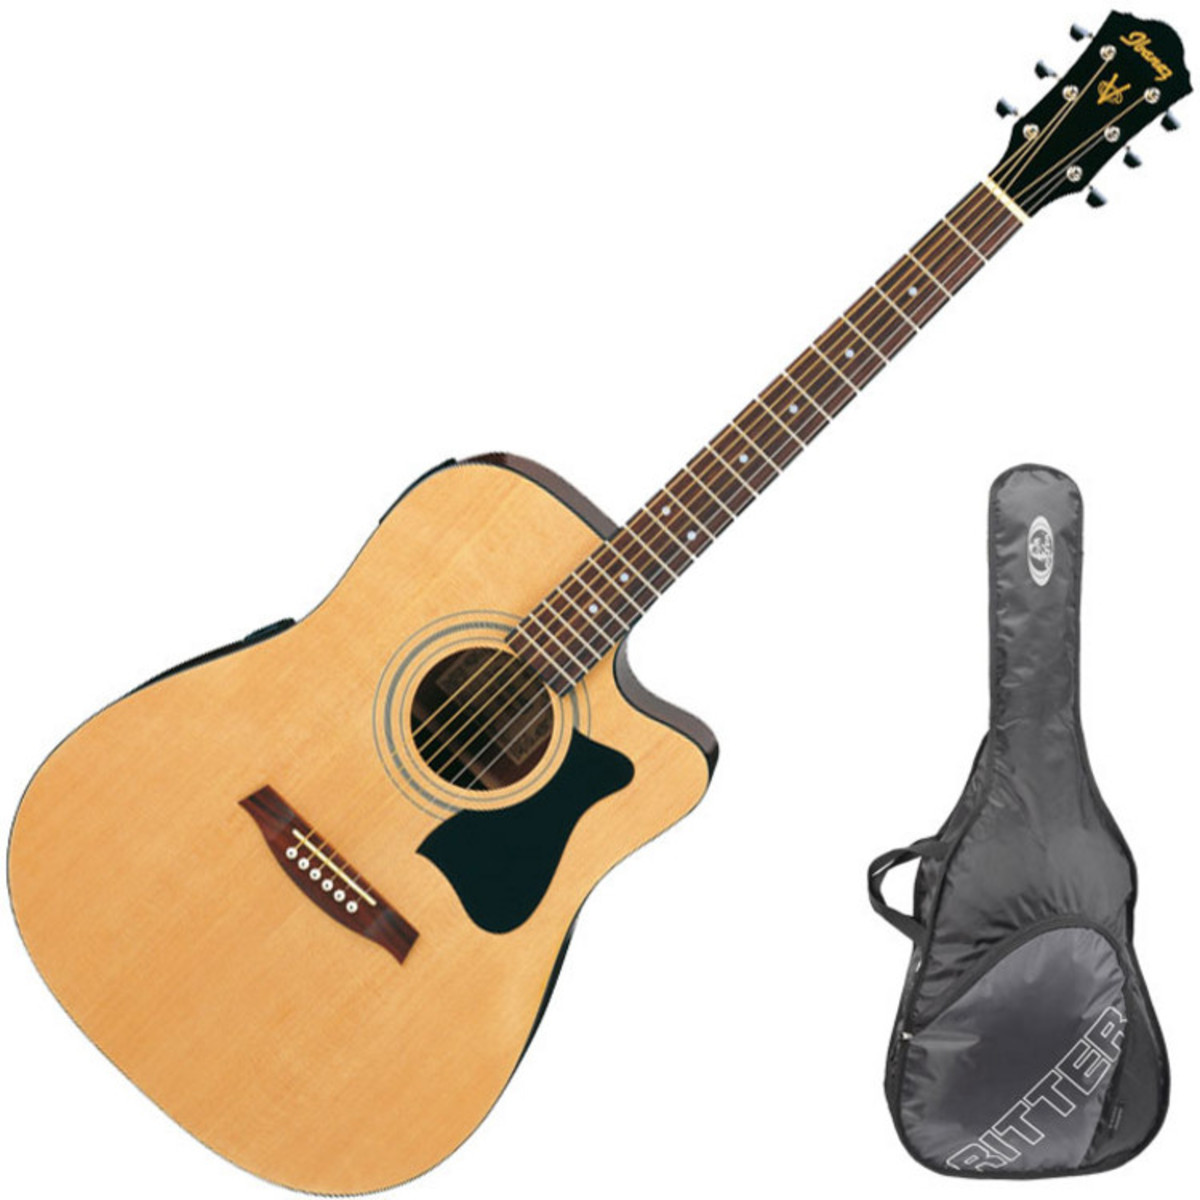 guitare lectro acoustique de disque ibanez v72ece housse. Black Bedroom Furniture Sets. Home Design Ideas